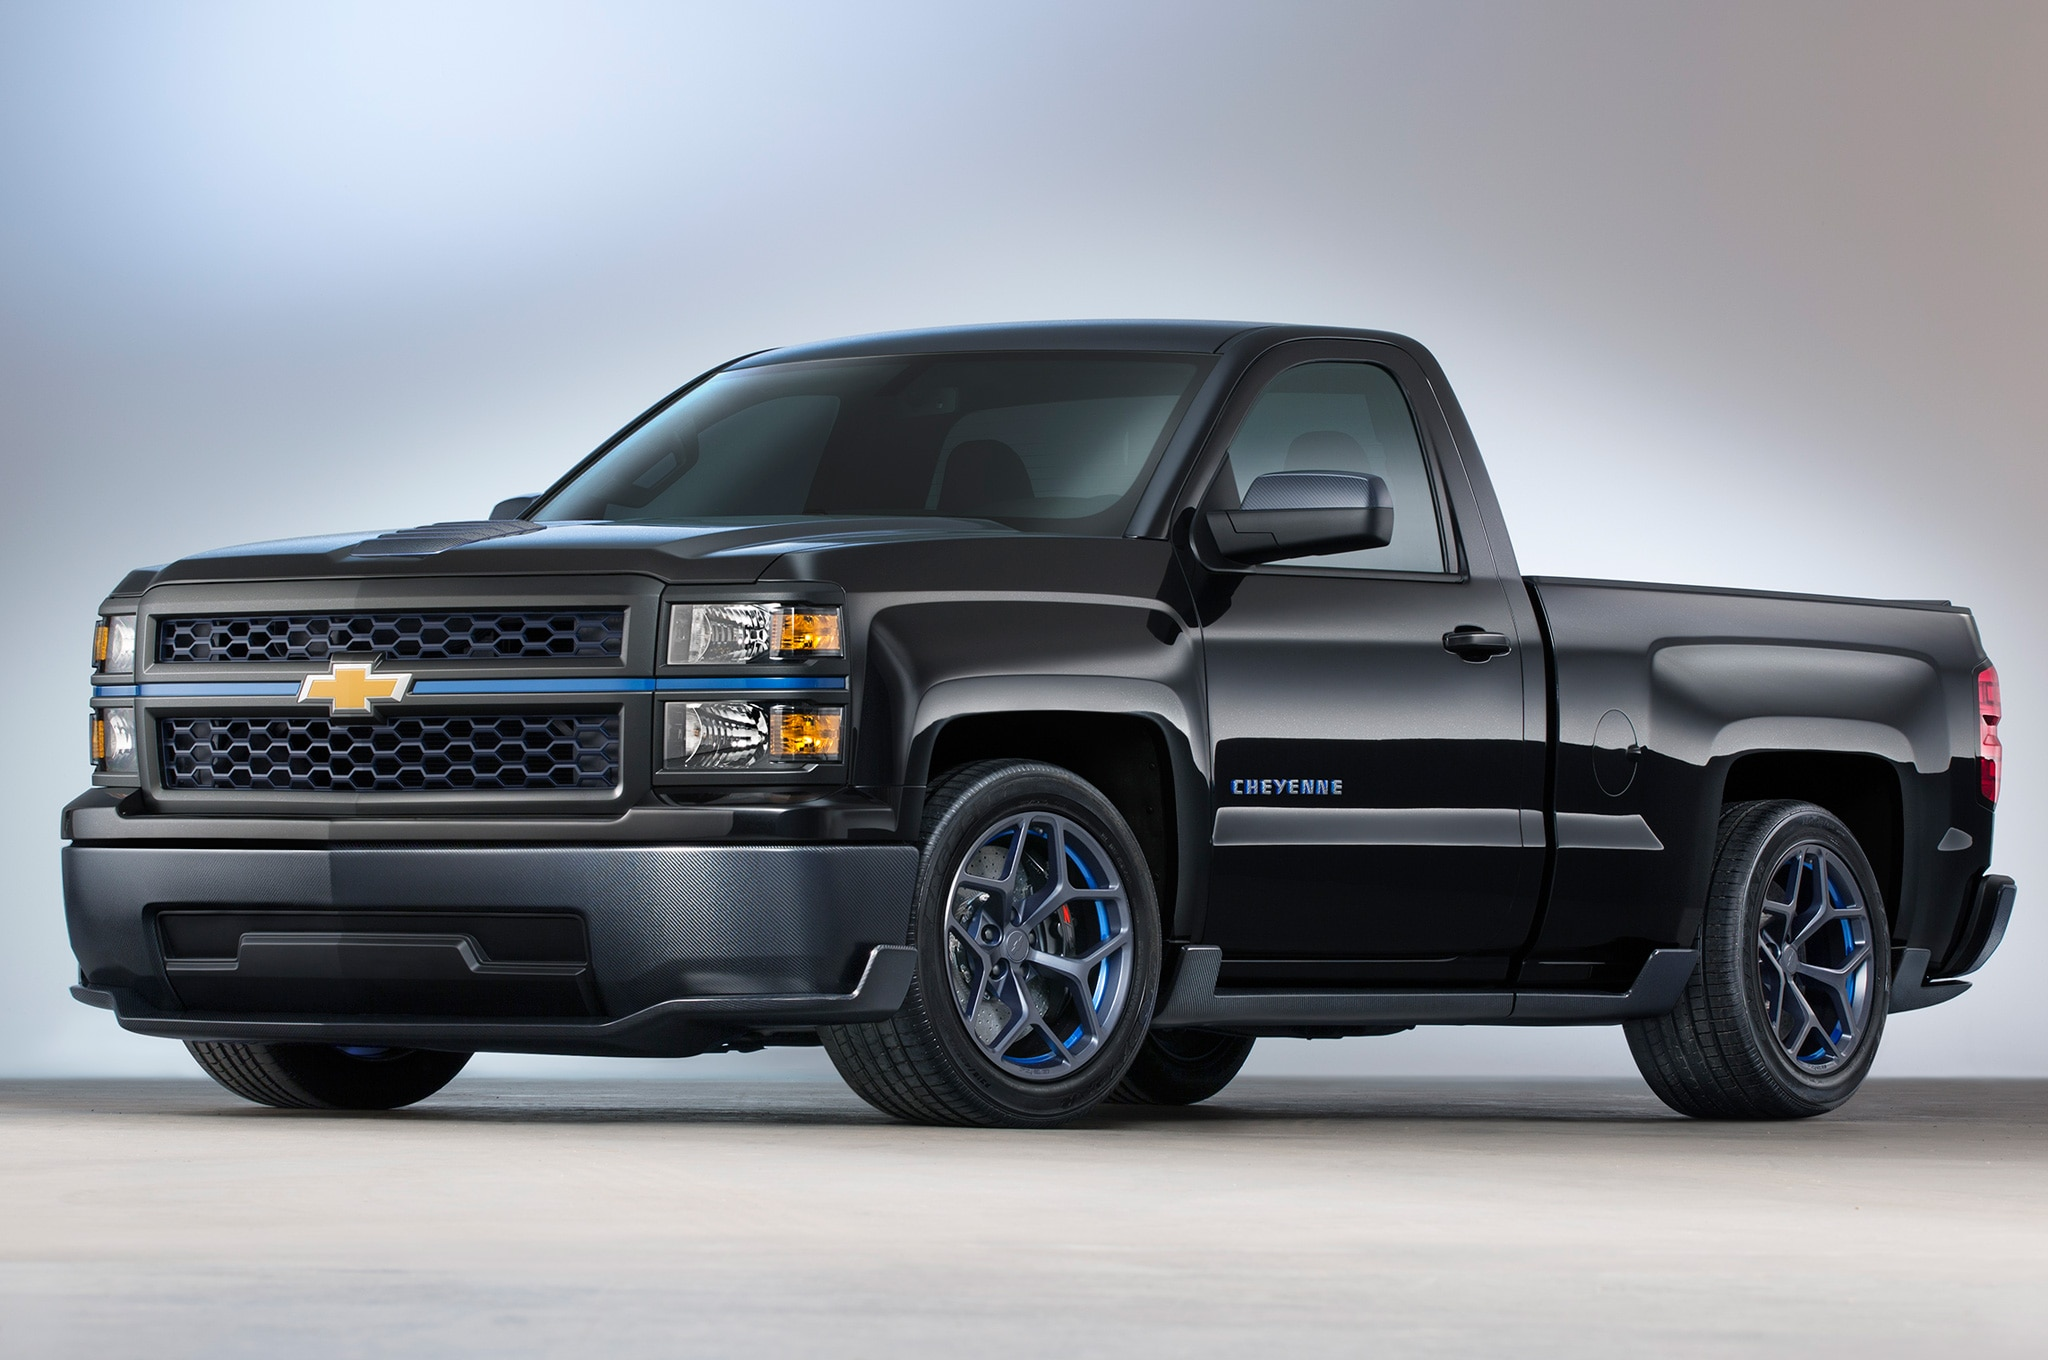 2014 chevrolet silverado cheyenne sema concept revealed. Black Bedroom Furniture Sets. Home Design Ideas